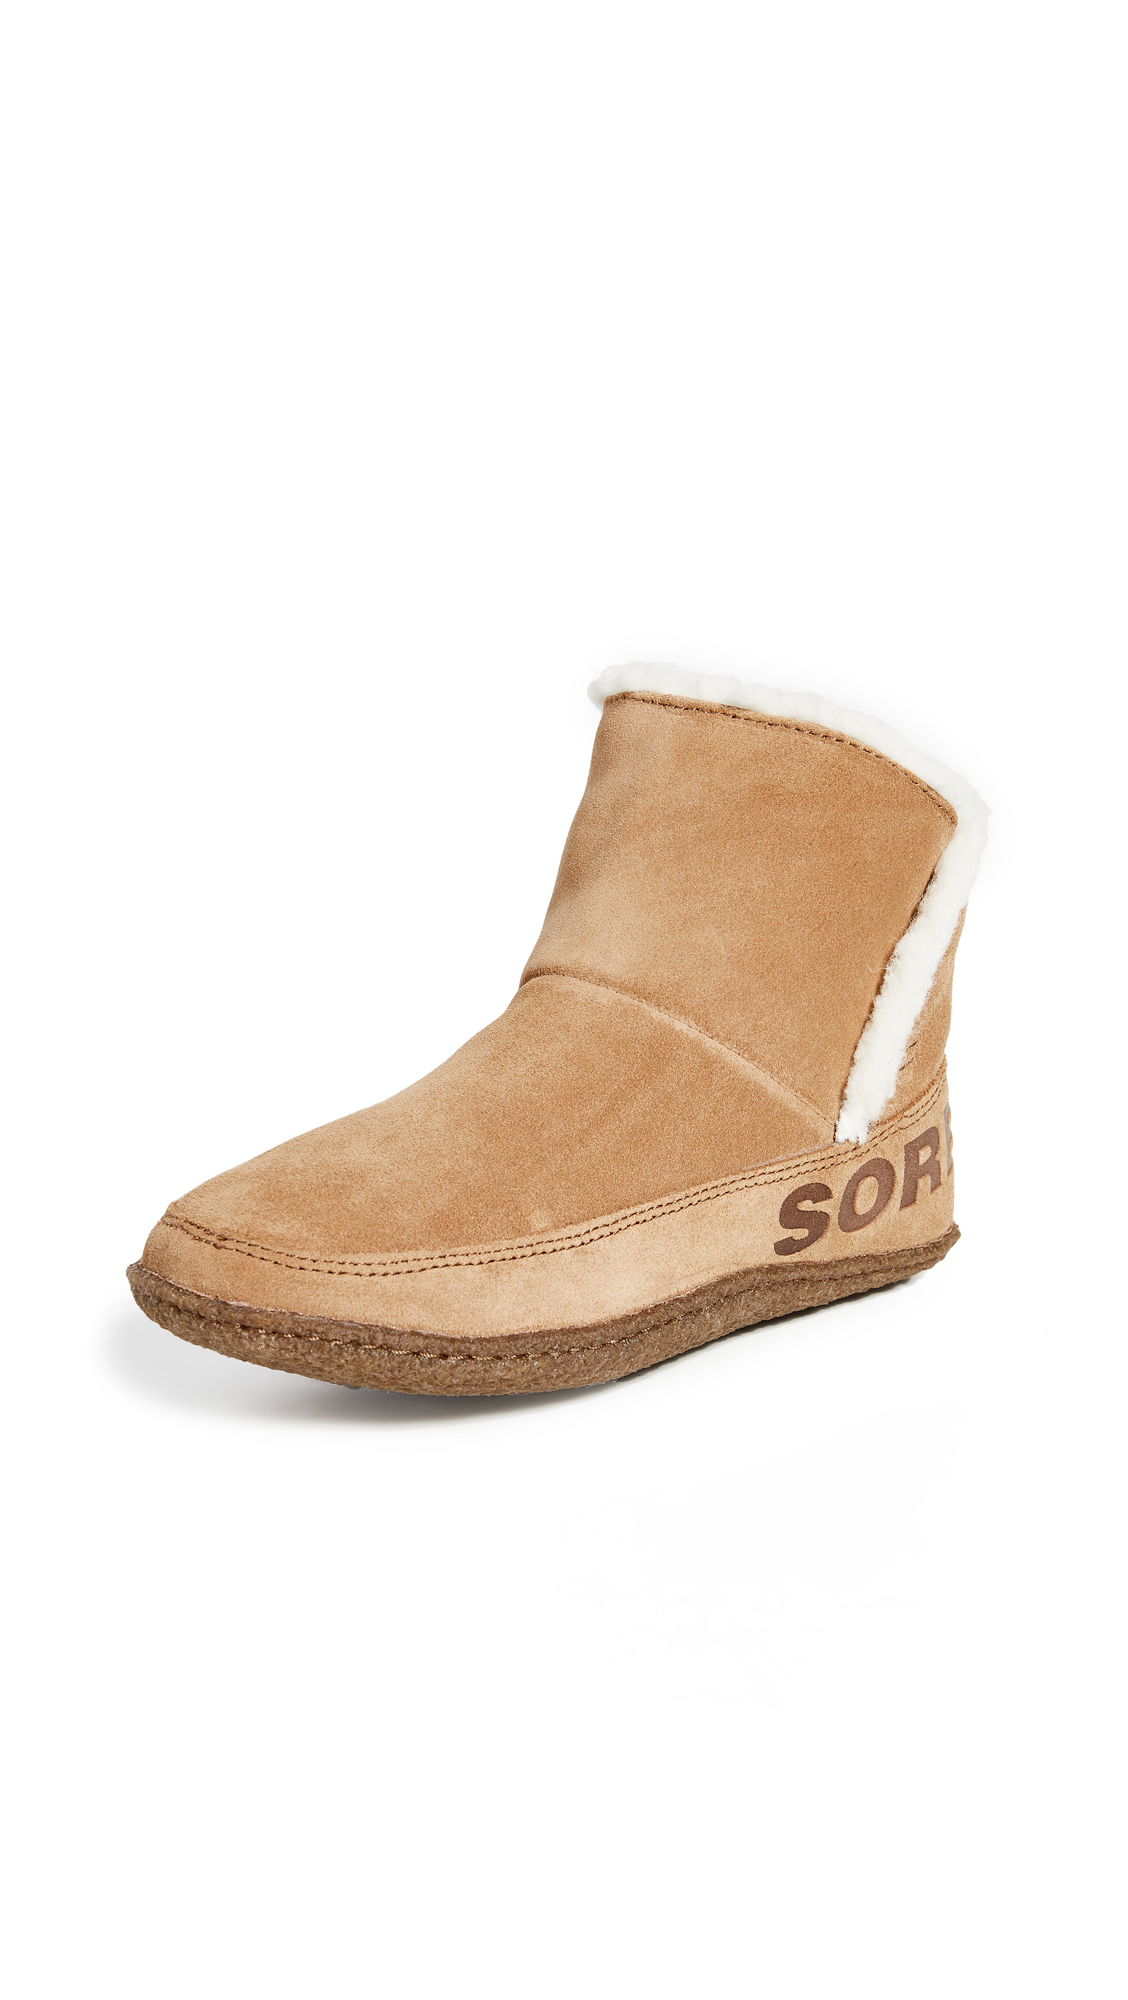 Buy Sorel Nakiska Bootie Slippers online, shop Sorel